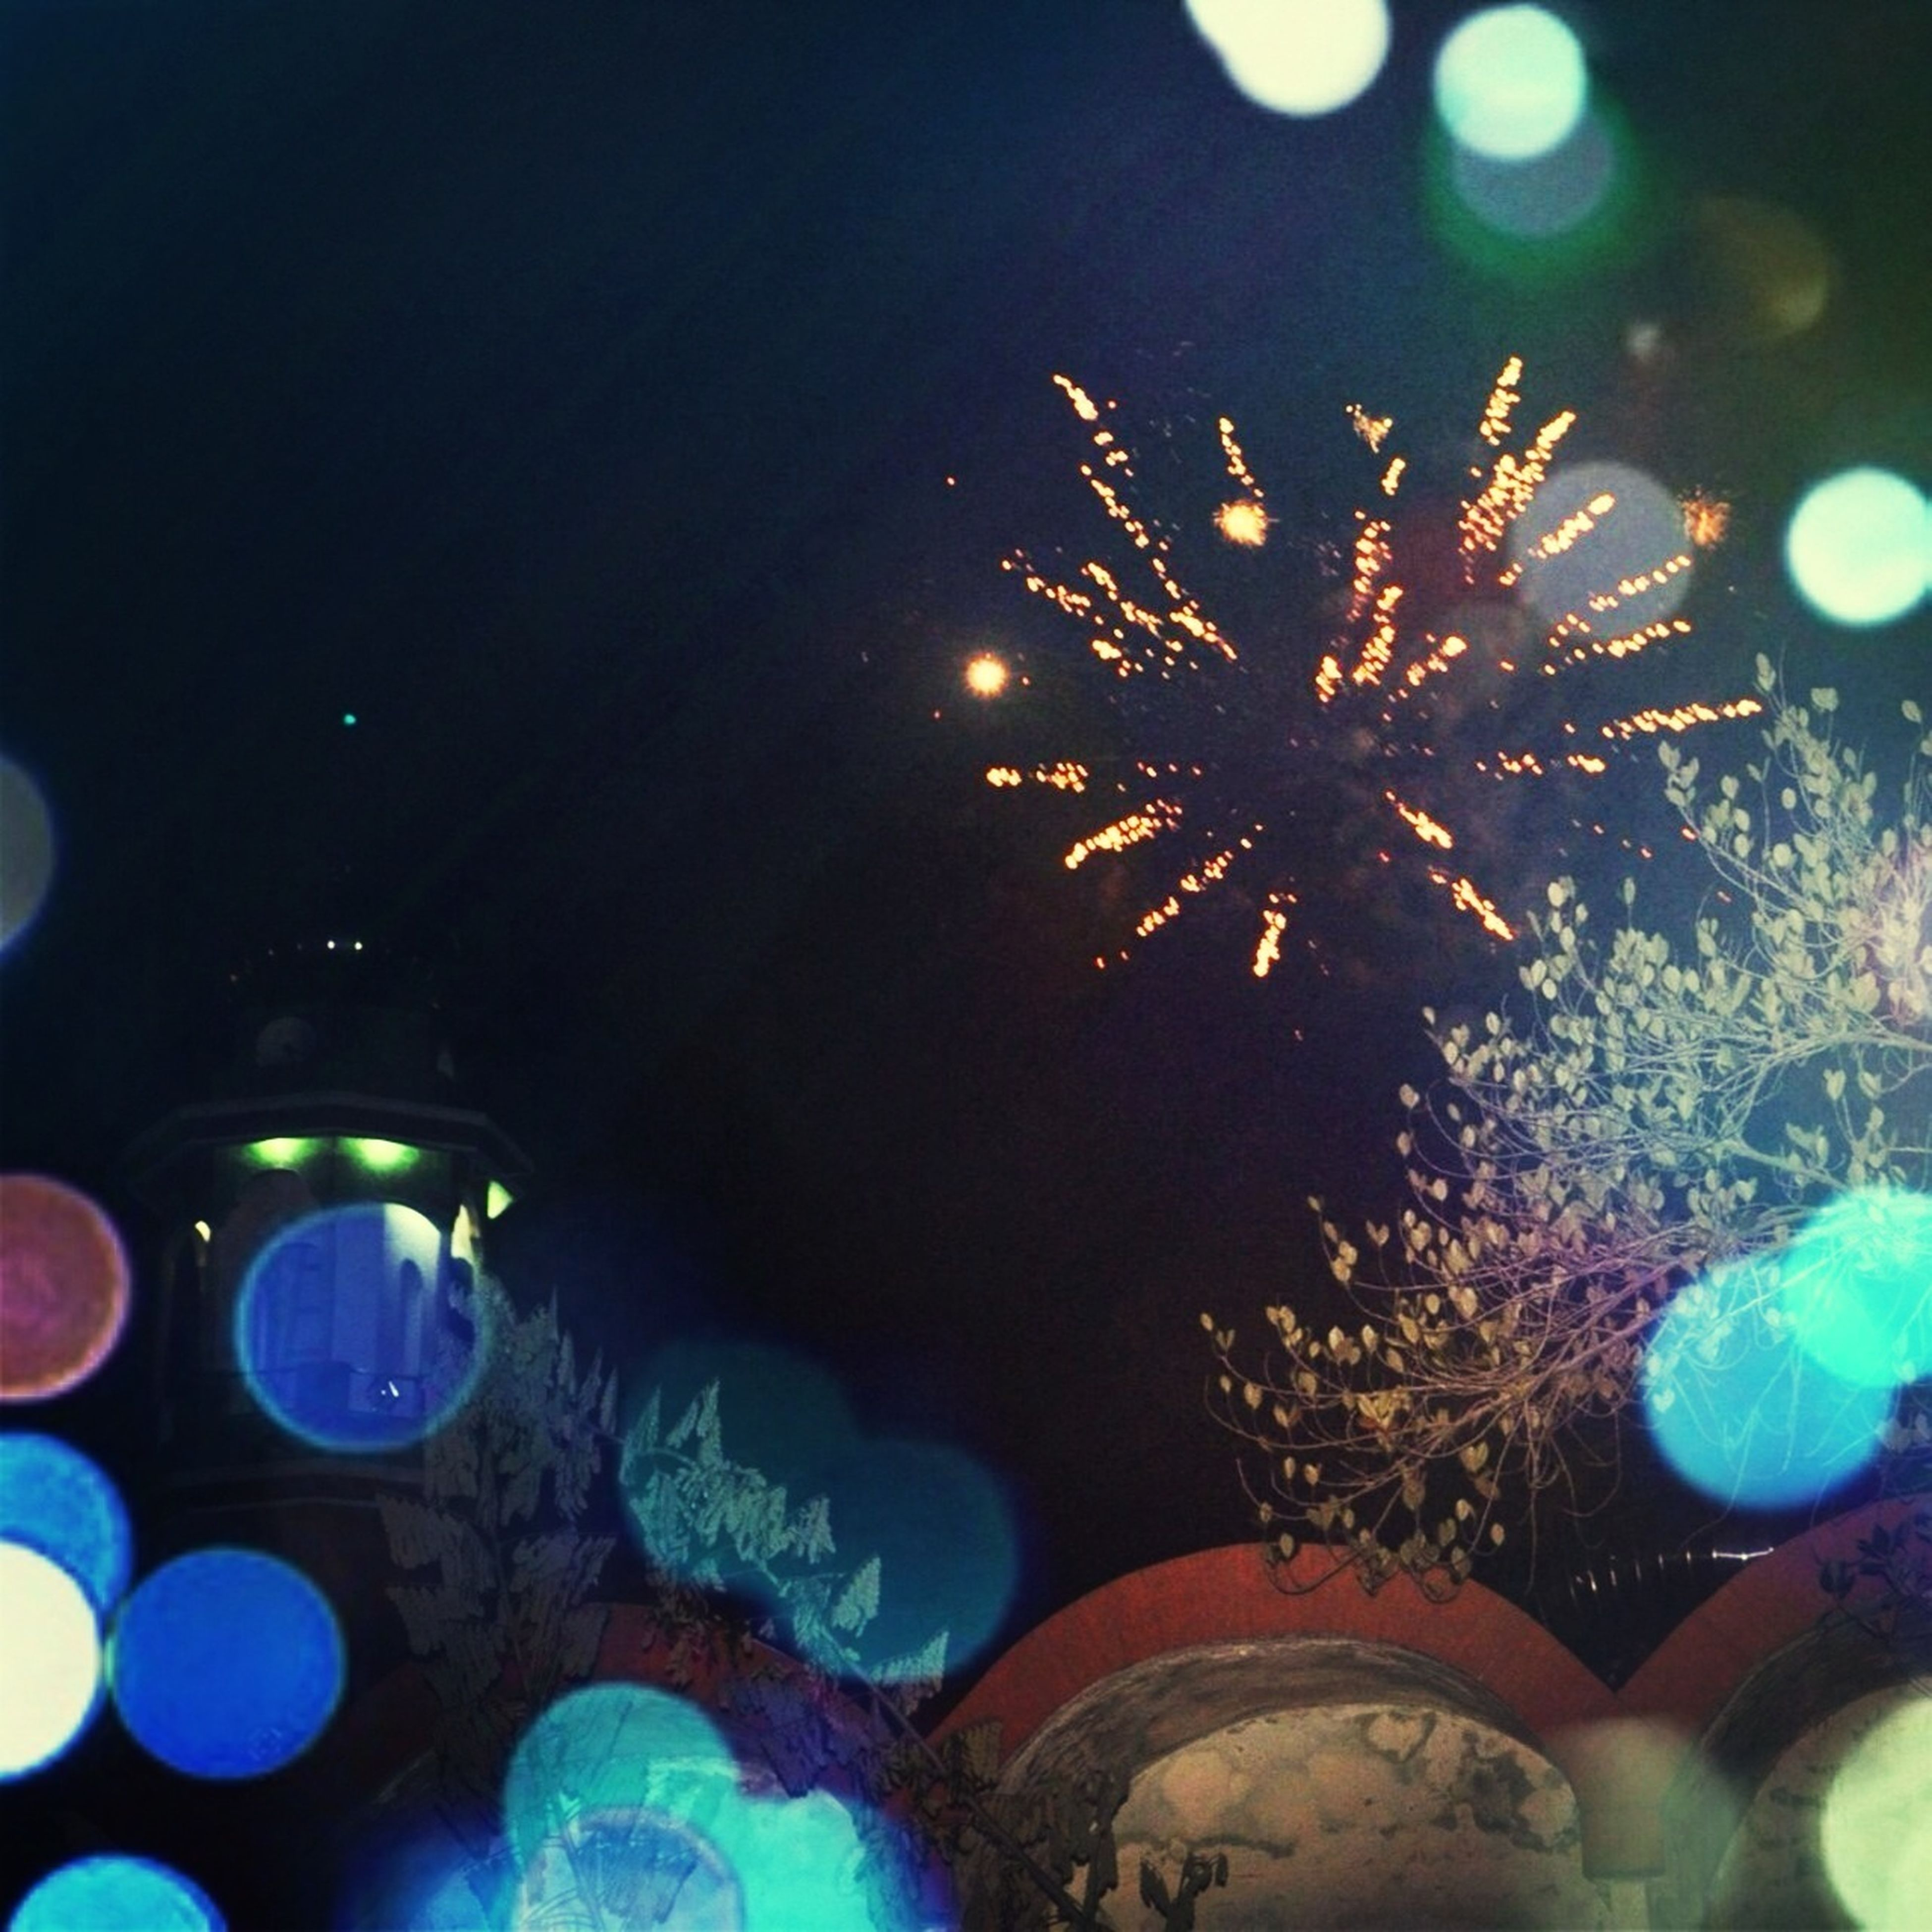 illuminated, night, glowing, celebration, lighting equipment, low angle view, multi colored, light - natural phenomenon, decoration, no people, outdoors, close-up, christmas decoration, firework display, circle, tree, exploding, arts culture and entertainment, light, long exposure